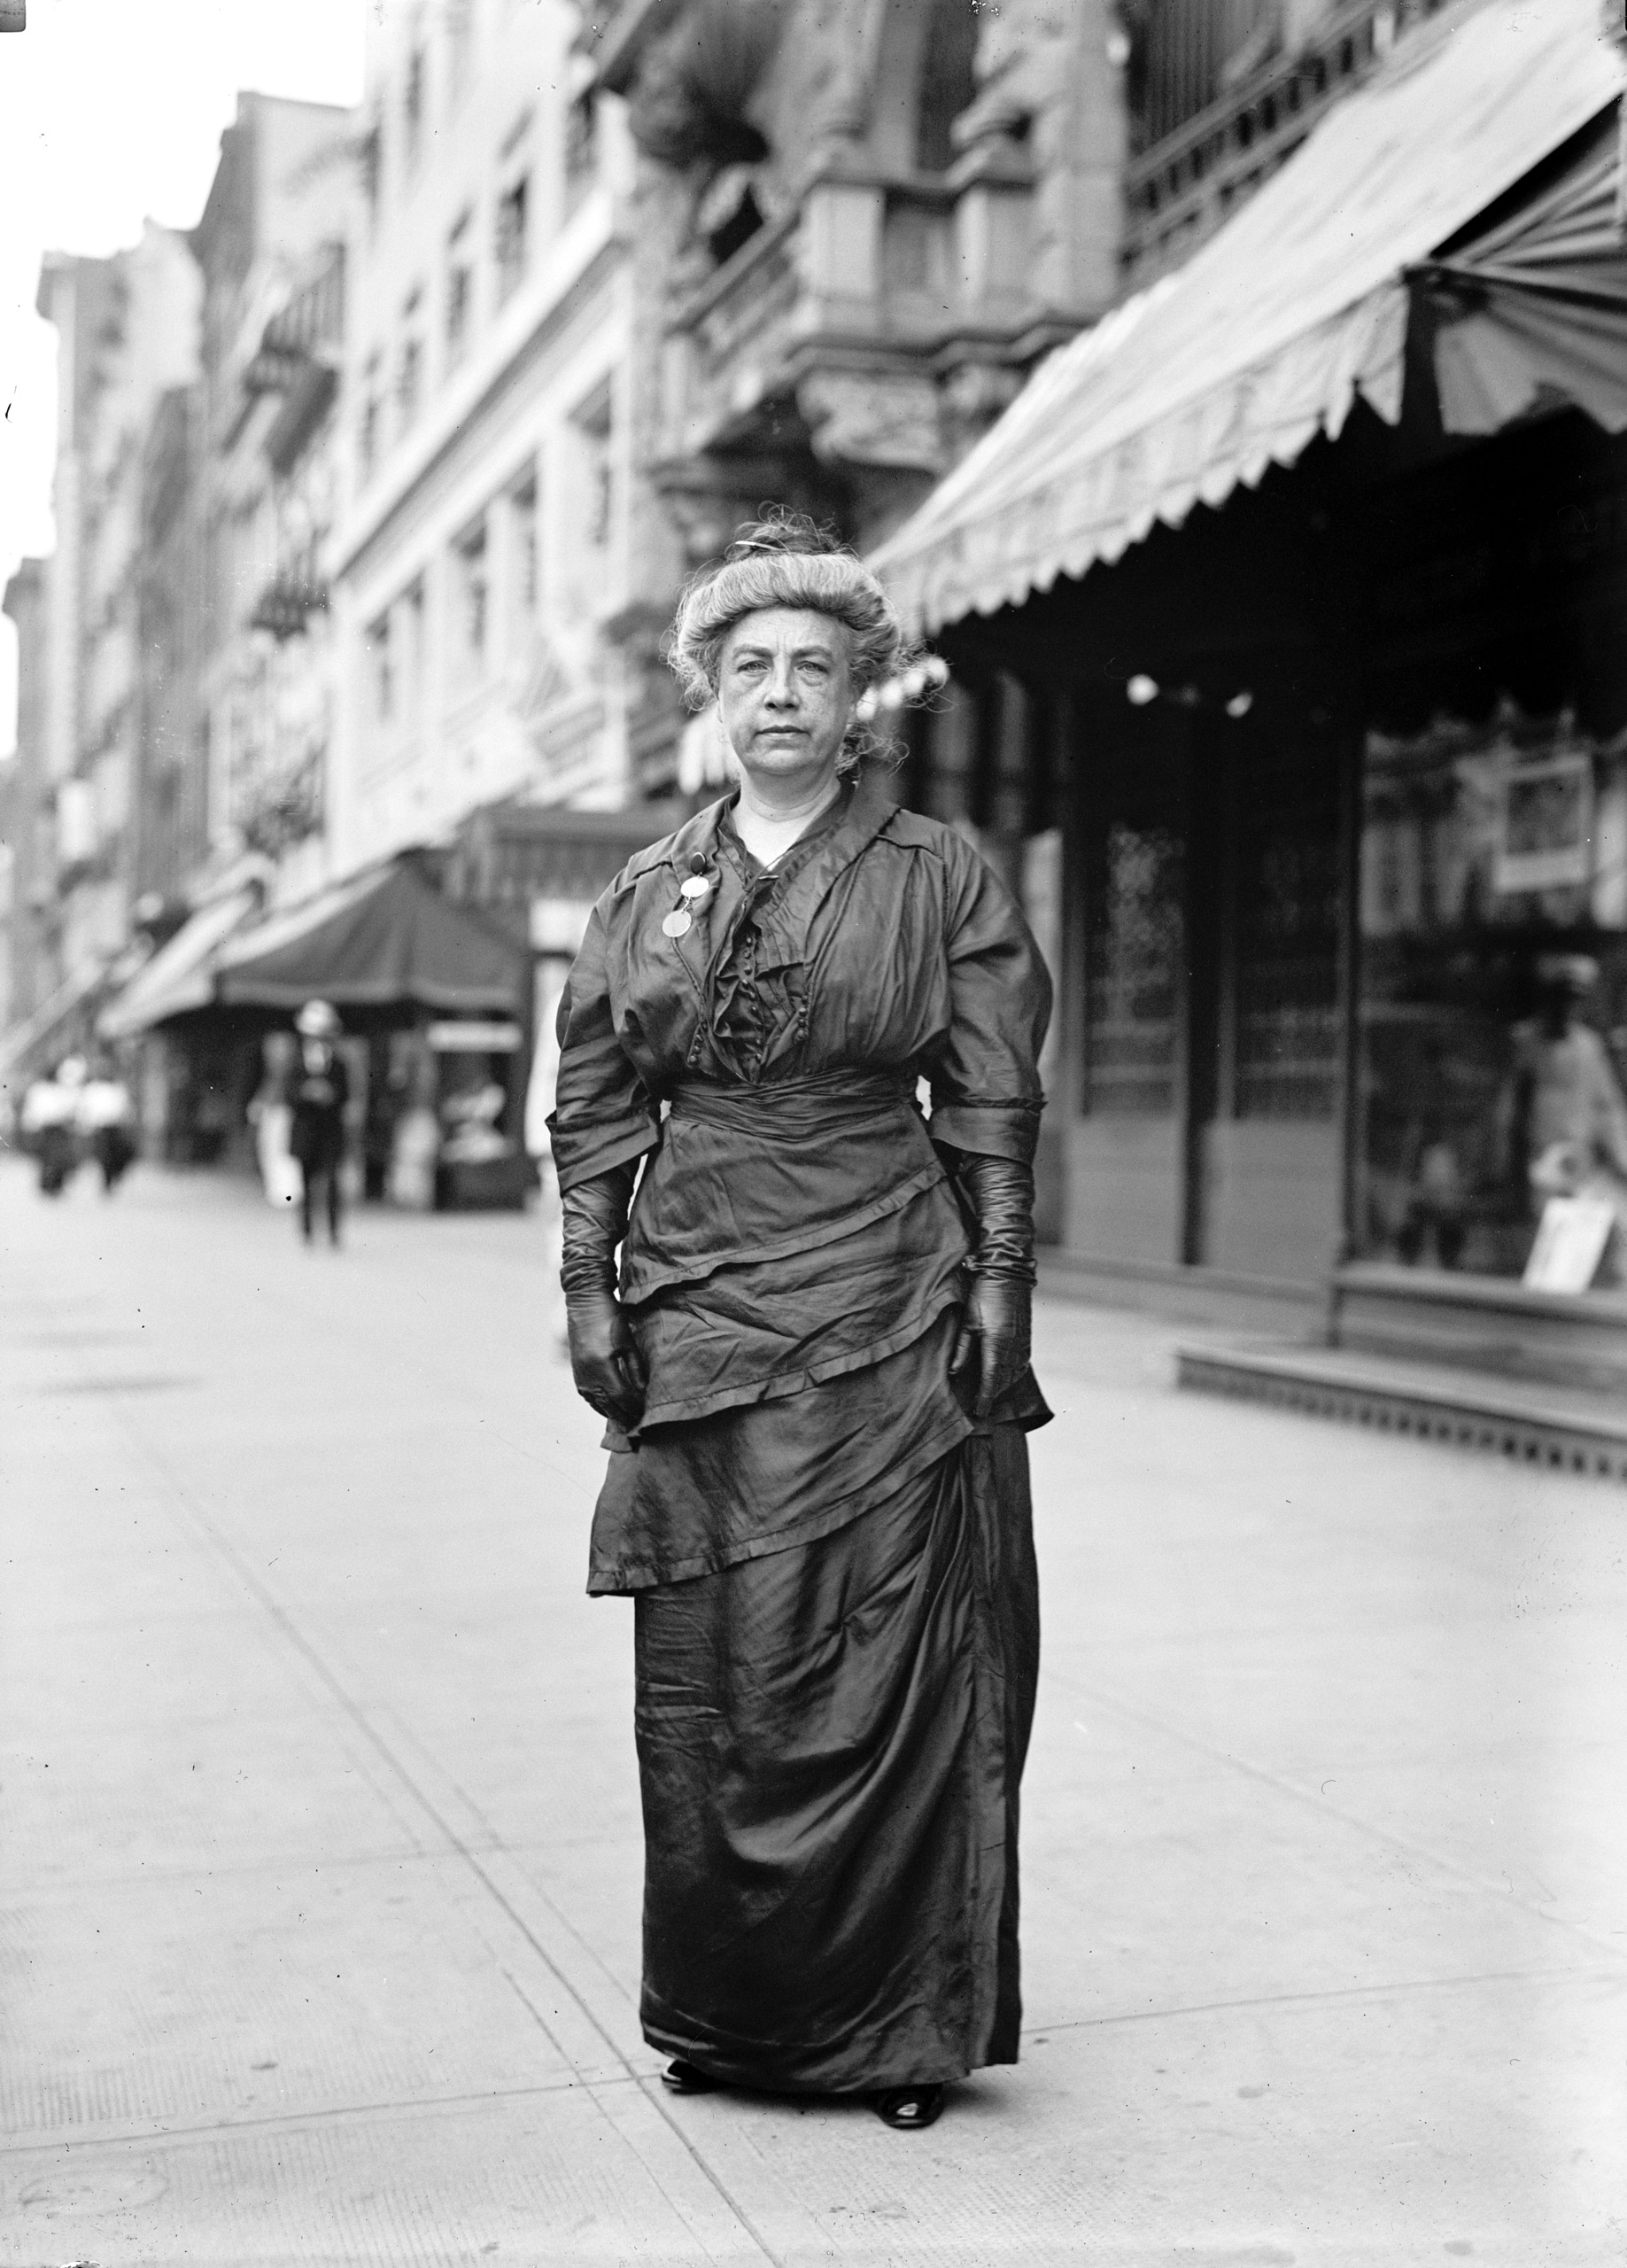 Kate M. Gordon (1861-1932), pictured in 1914.Gordon was a founder of the Southern States Woman Suffrage Conference. She was, surprisingly enough, opposed to an Constitutional amendment giving women the vote; rather, she supported suffrage guarantees on a state level.